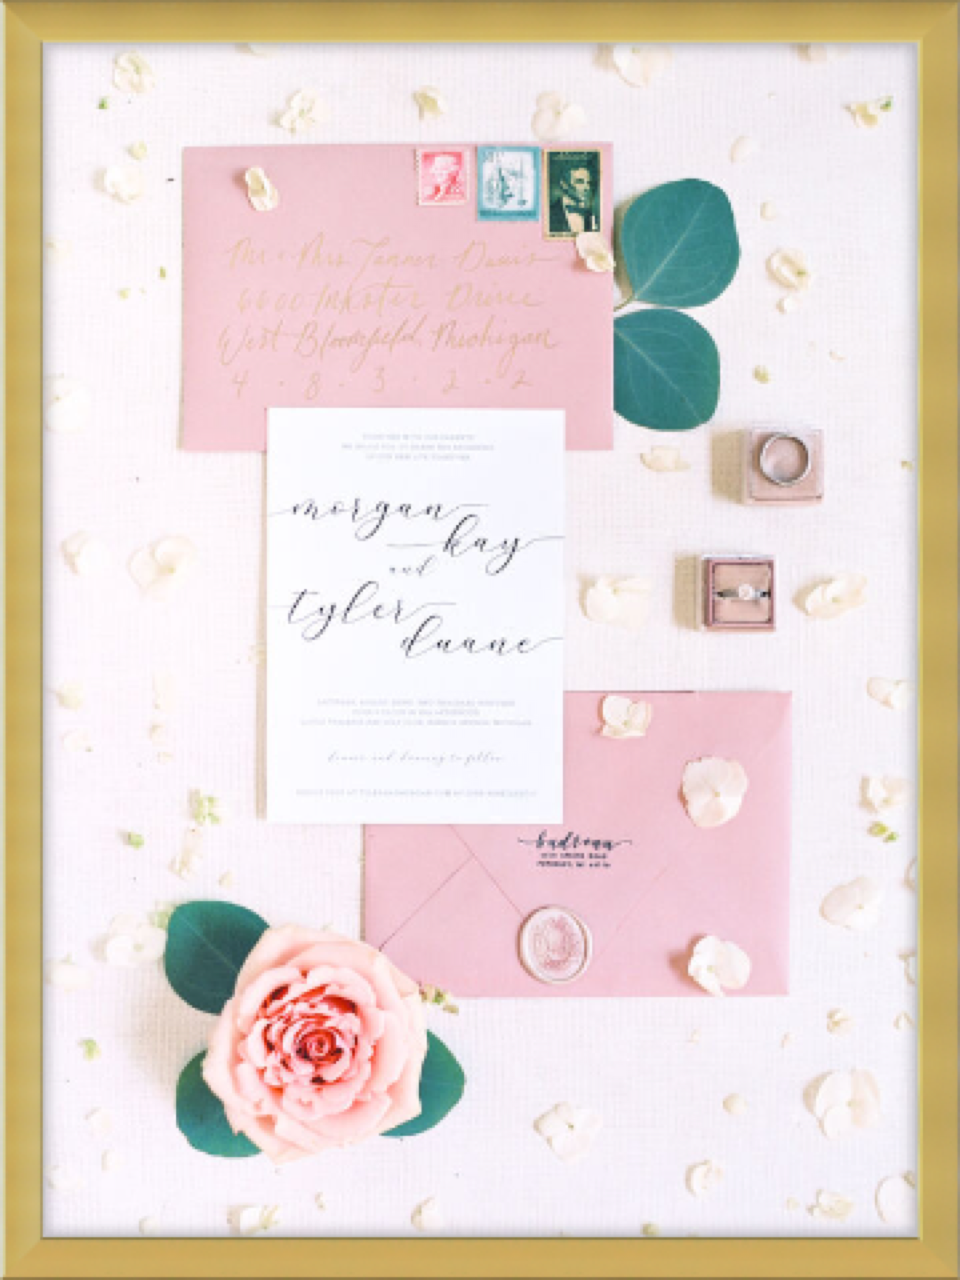 framed wedding invitation